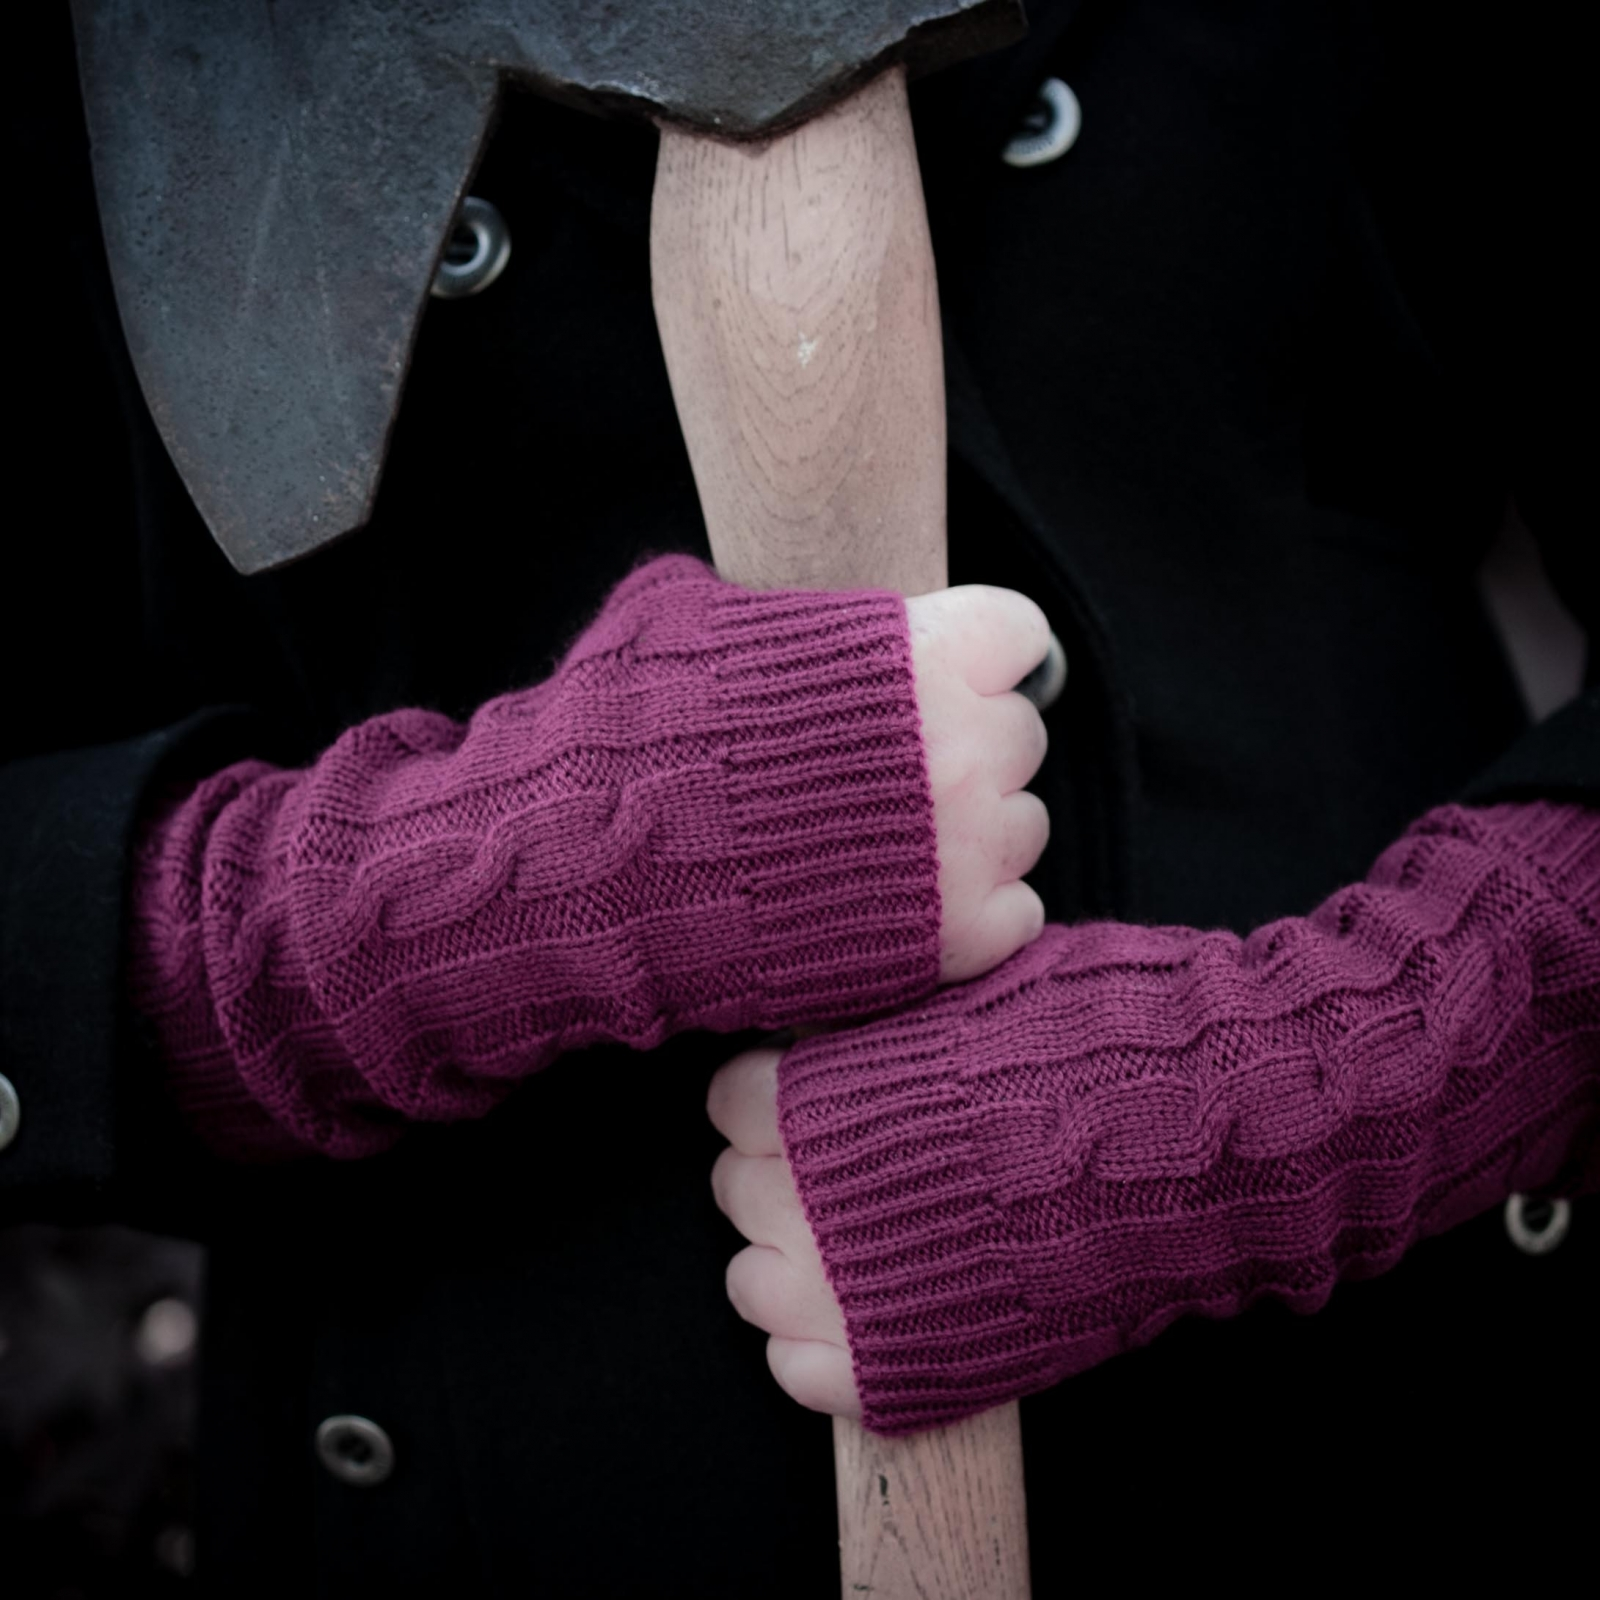 Loom Knit Fingerless Gloves Mitts Pattern | This Moment is Good